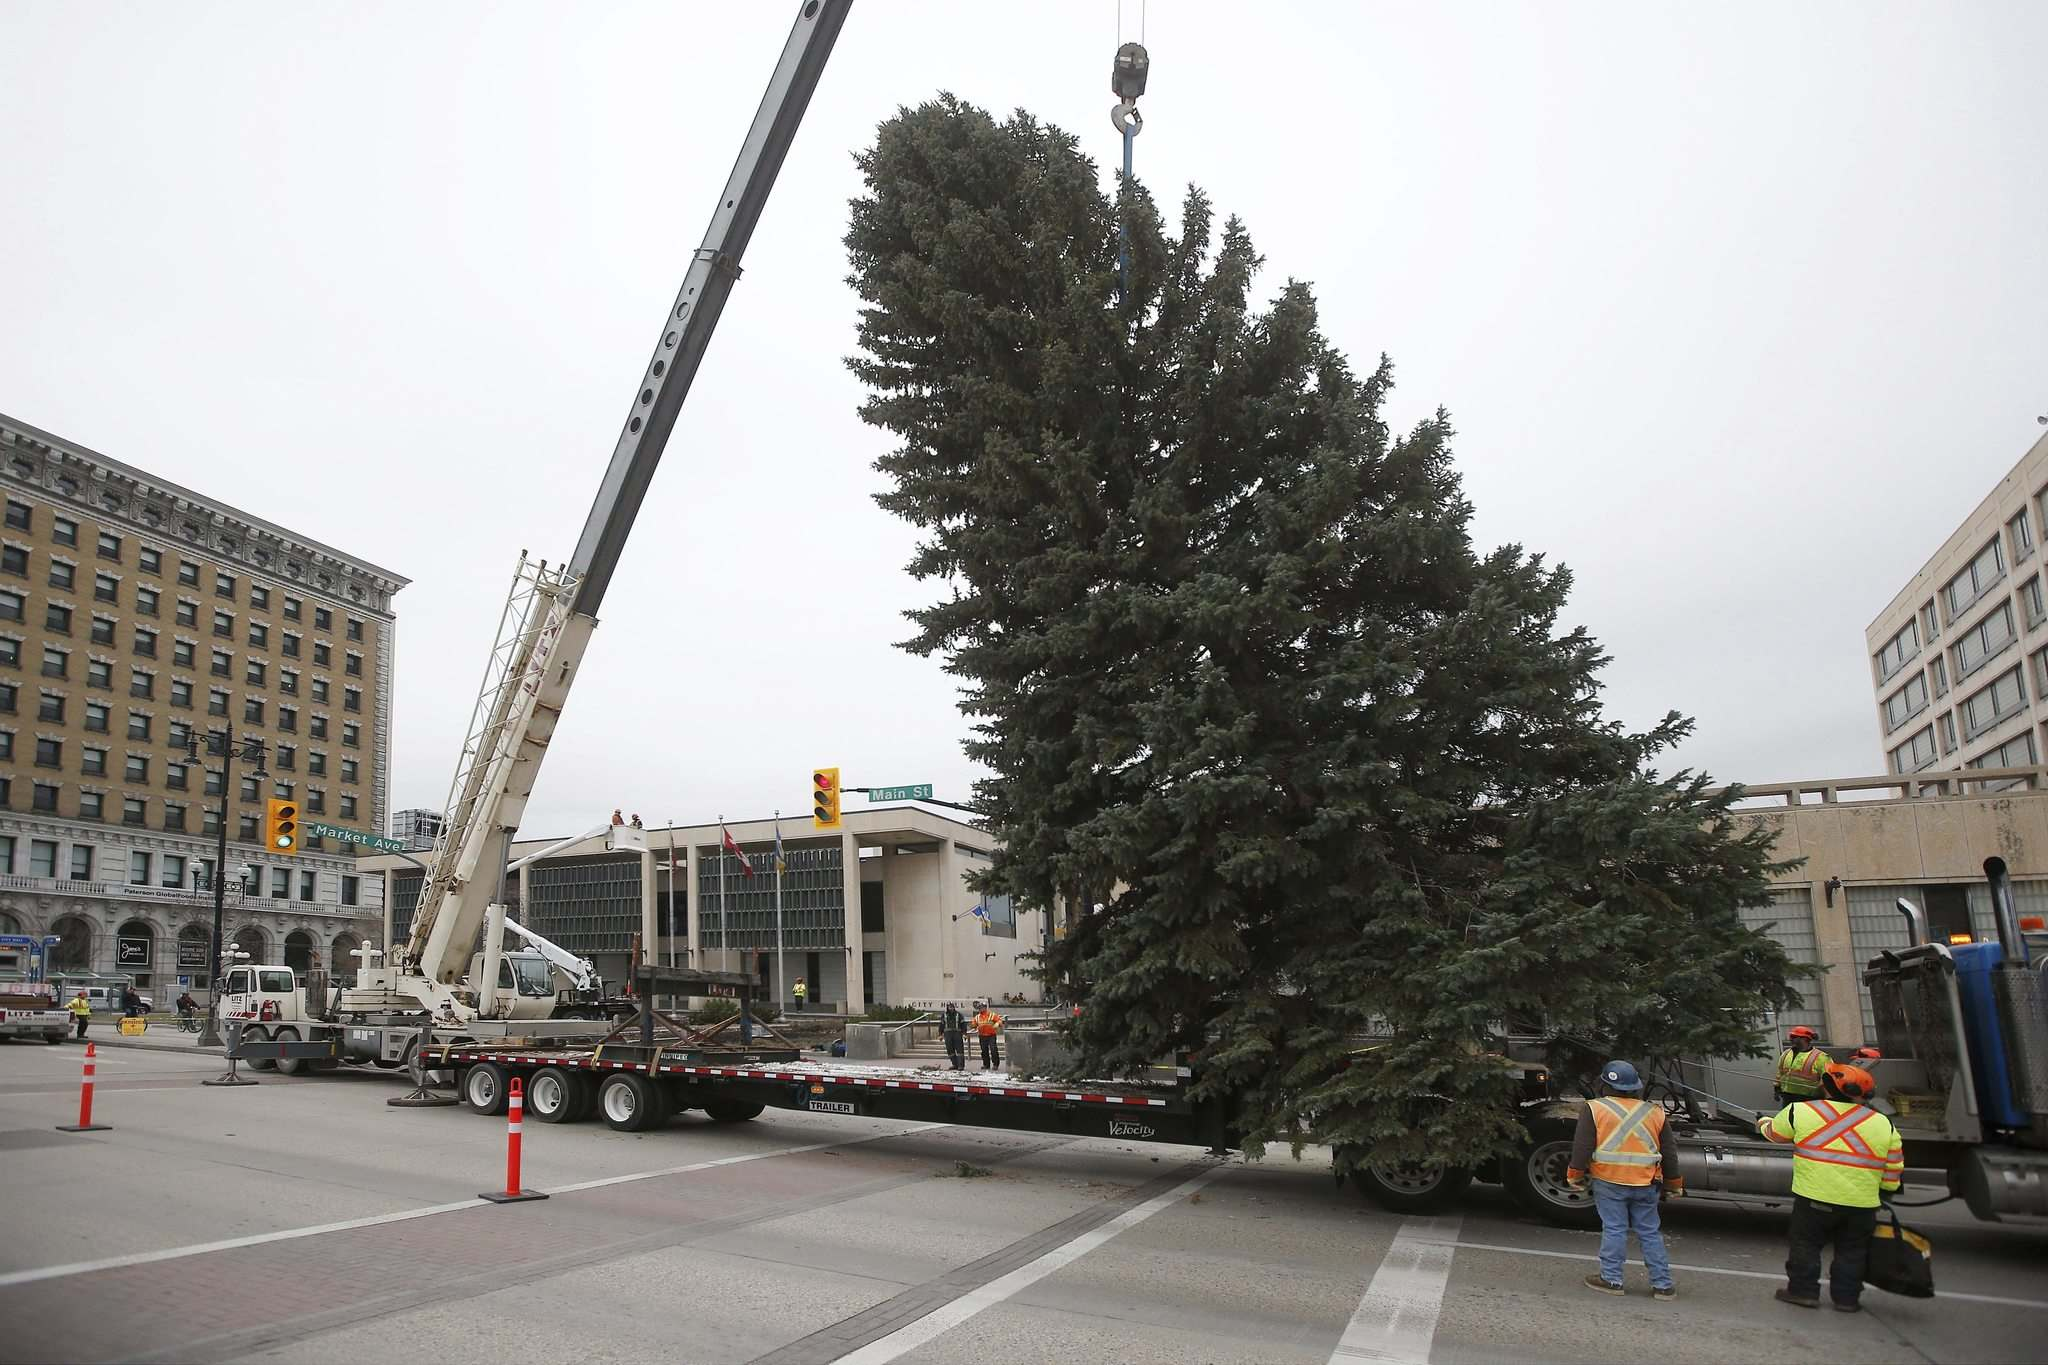 For 55 years, Winnipeggers have been donating a large Christmas tree to the city, which is decorated and put up outside of city hall each holiday season. (John Woods / Winnipeg Free Press files)